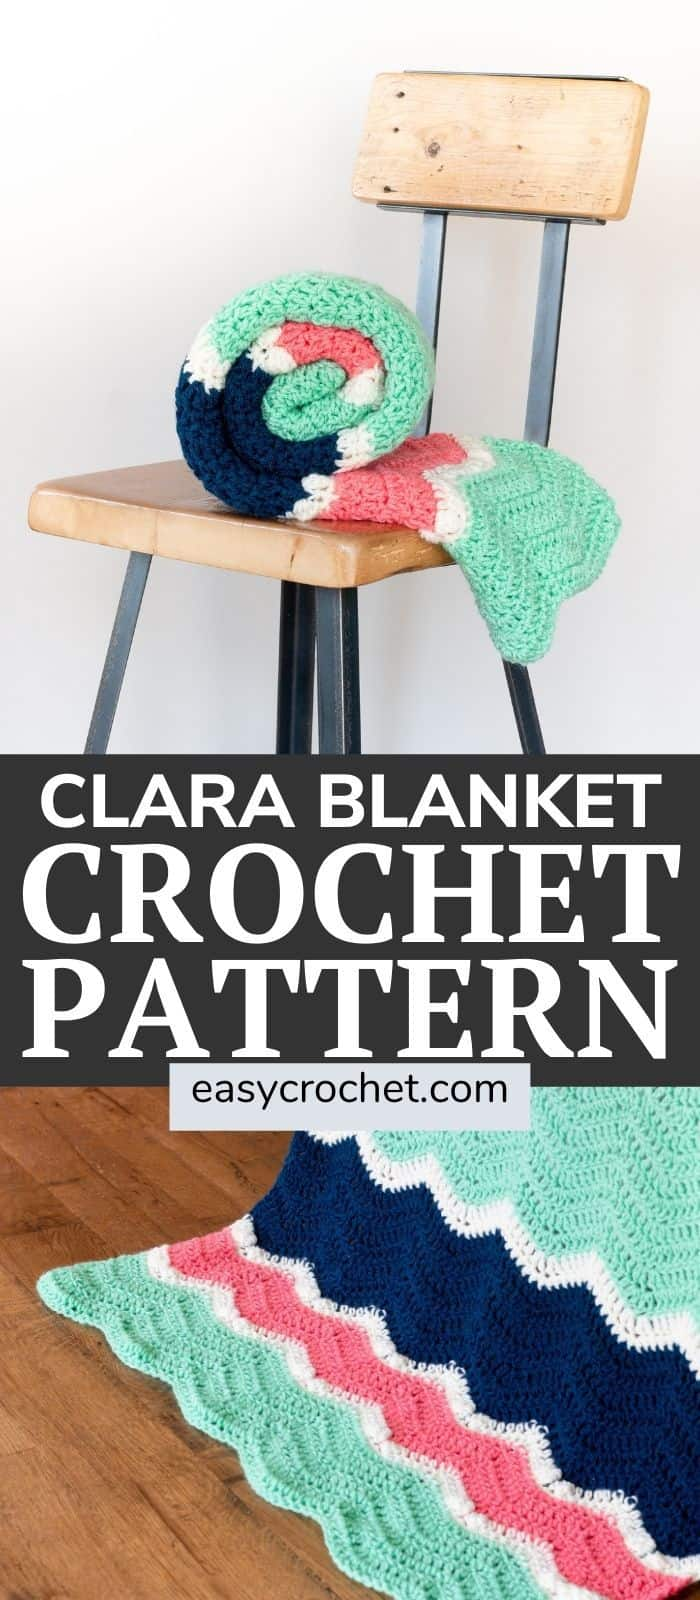 Make this crochet blanket pattern using the double crochet stitch! Free pattern from easycrochet.com. Find this design and many more. #crochetblanket #easycrochet #freecrochetpattern via @easycrochetcom